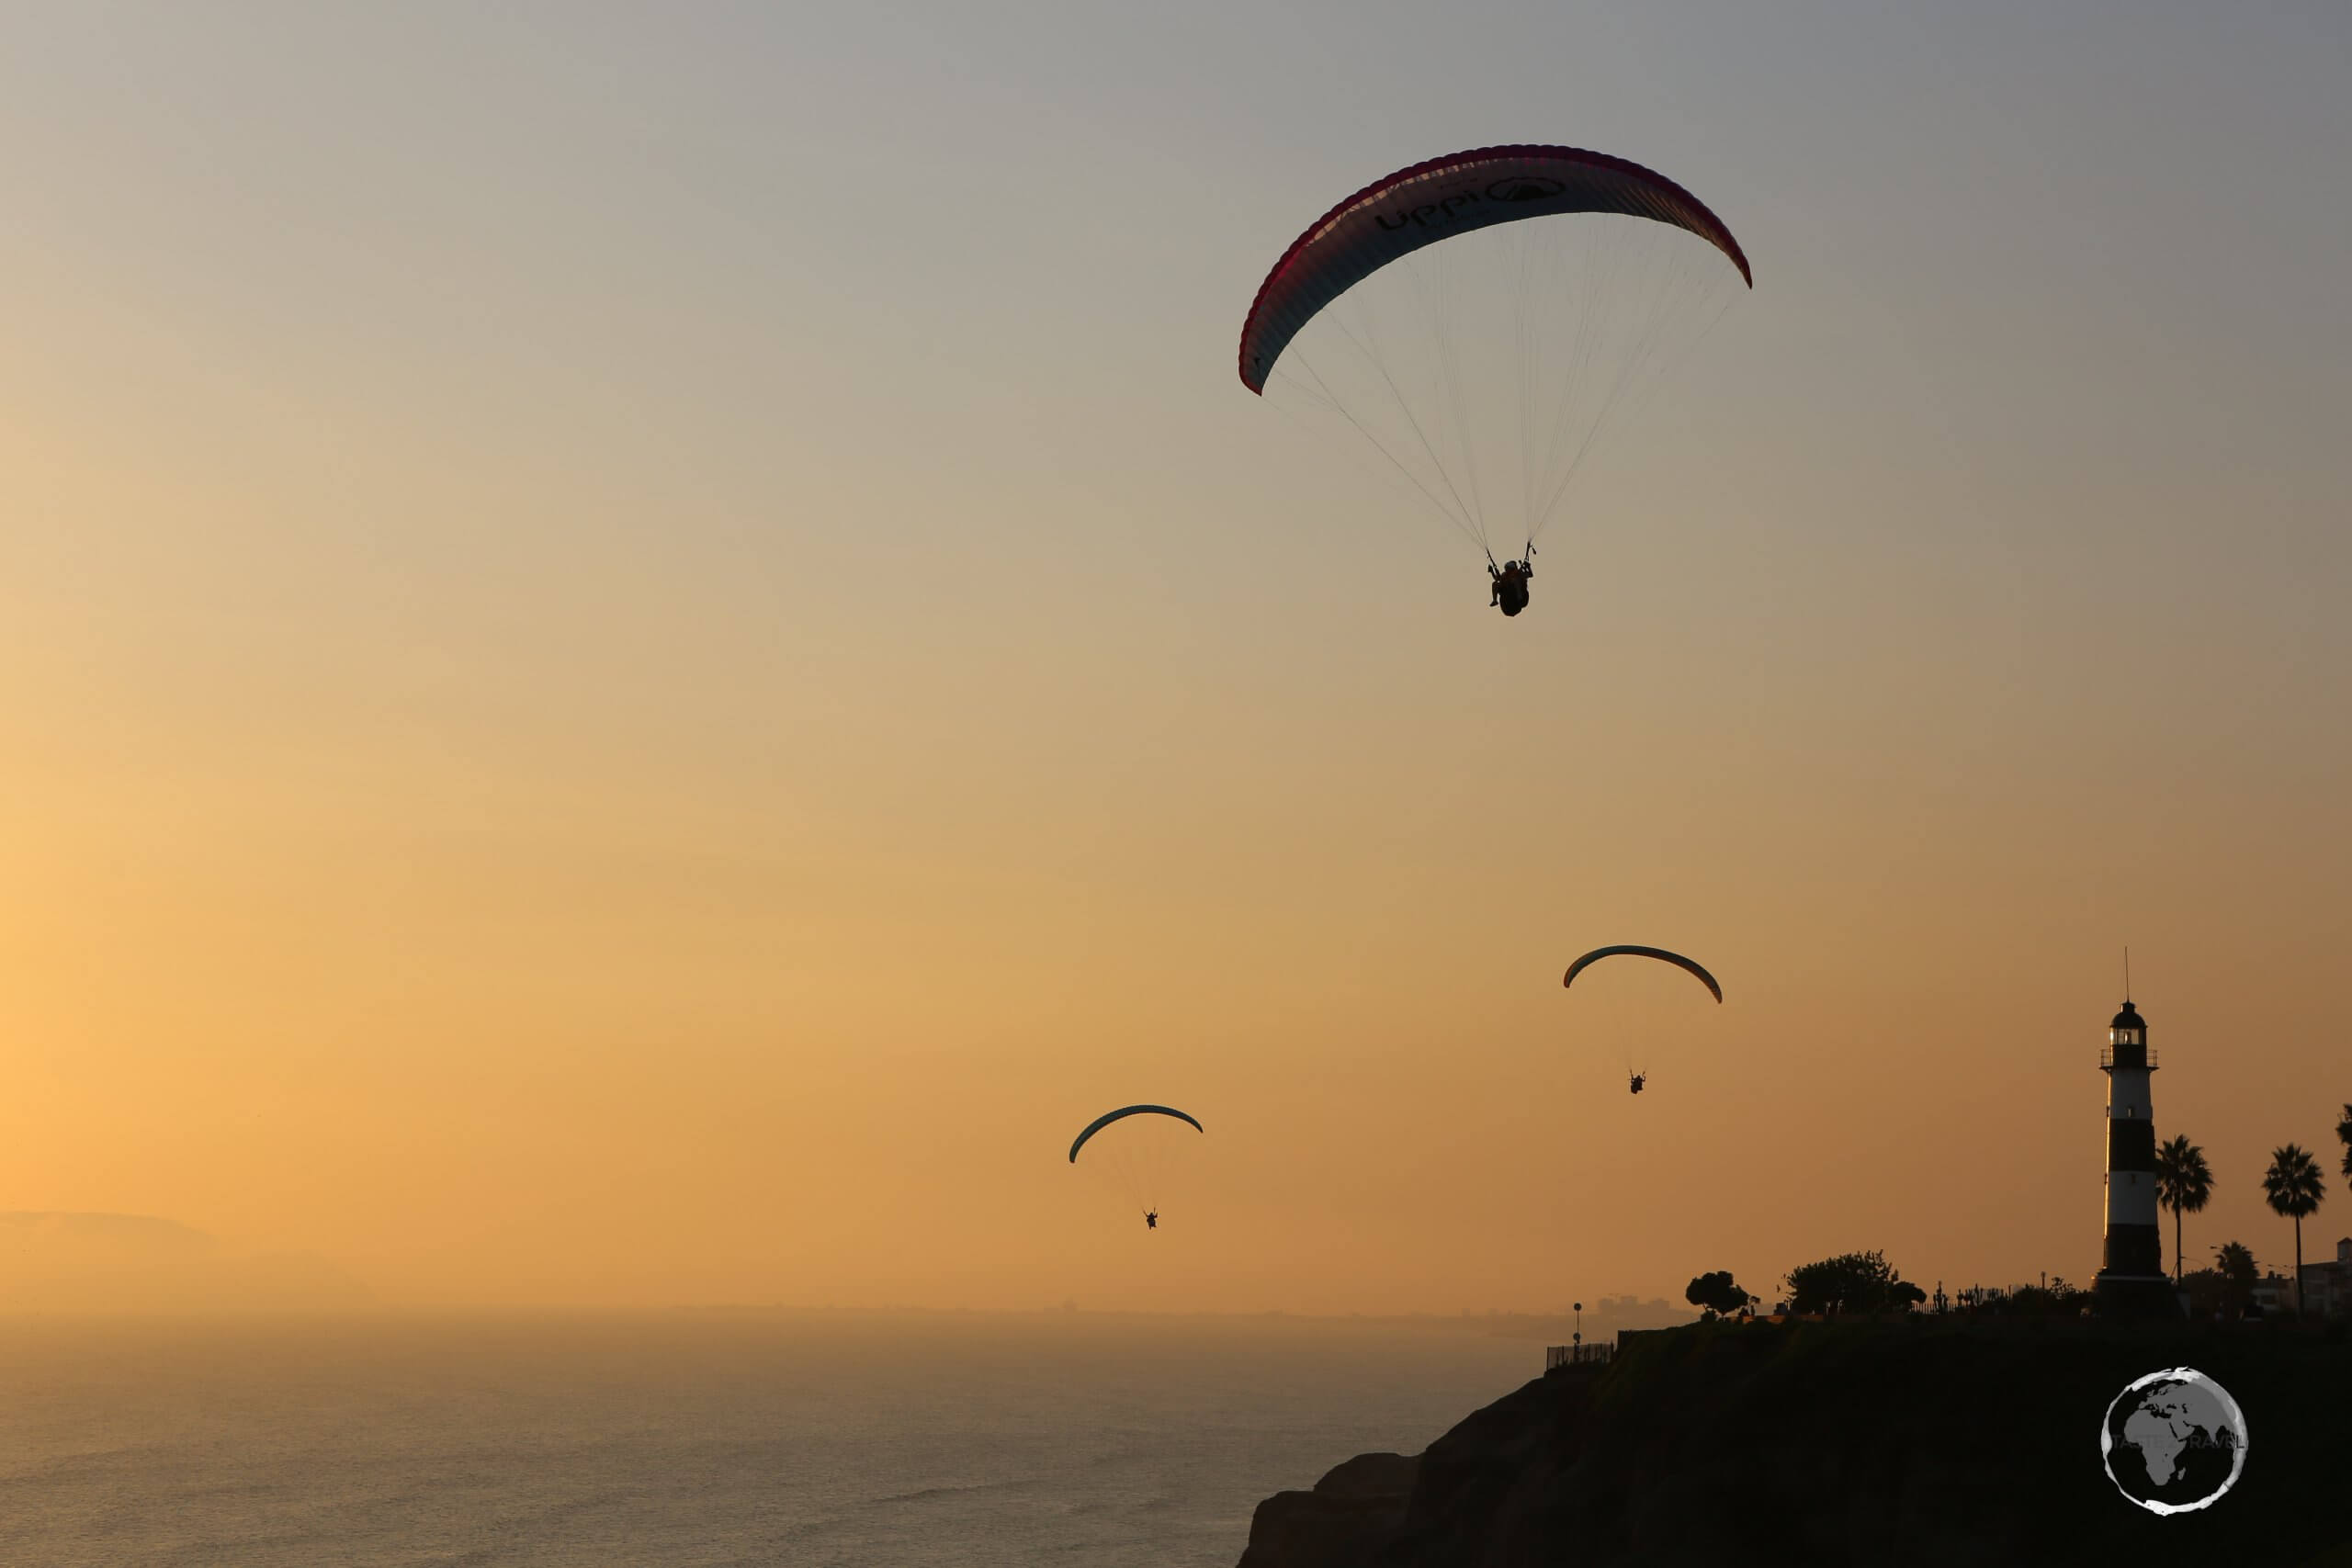 Paragliders over the Pacific Ocean at sunset, in Miraflores, an upscale neighbourhood of Lima, the capital of Peru.